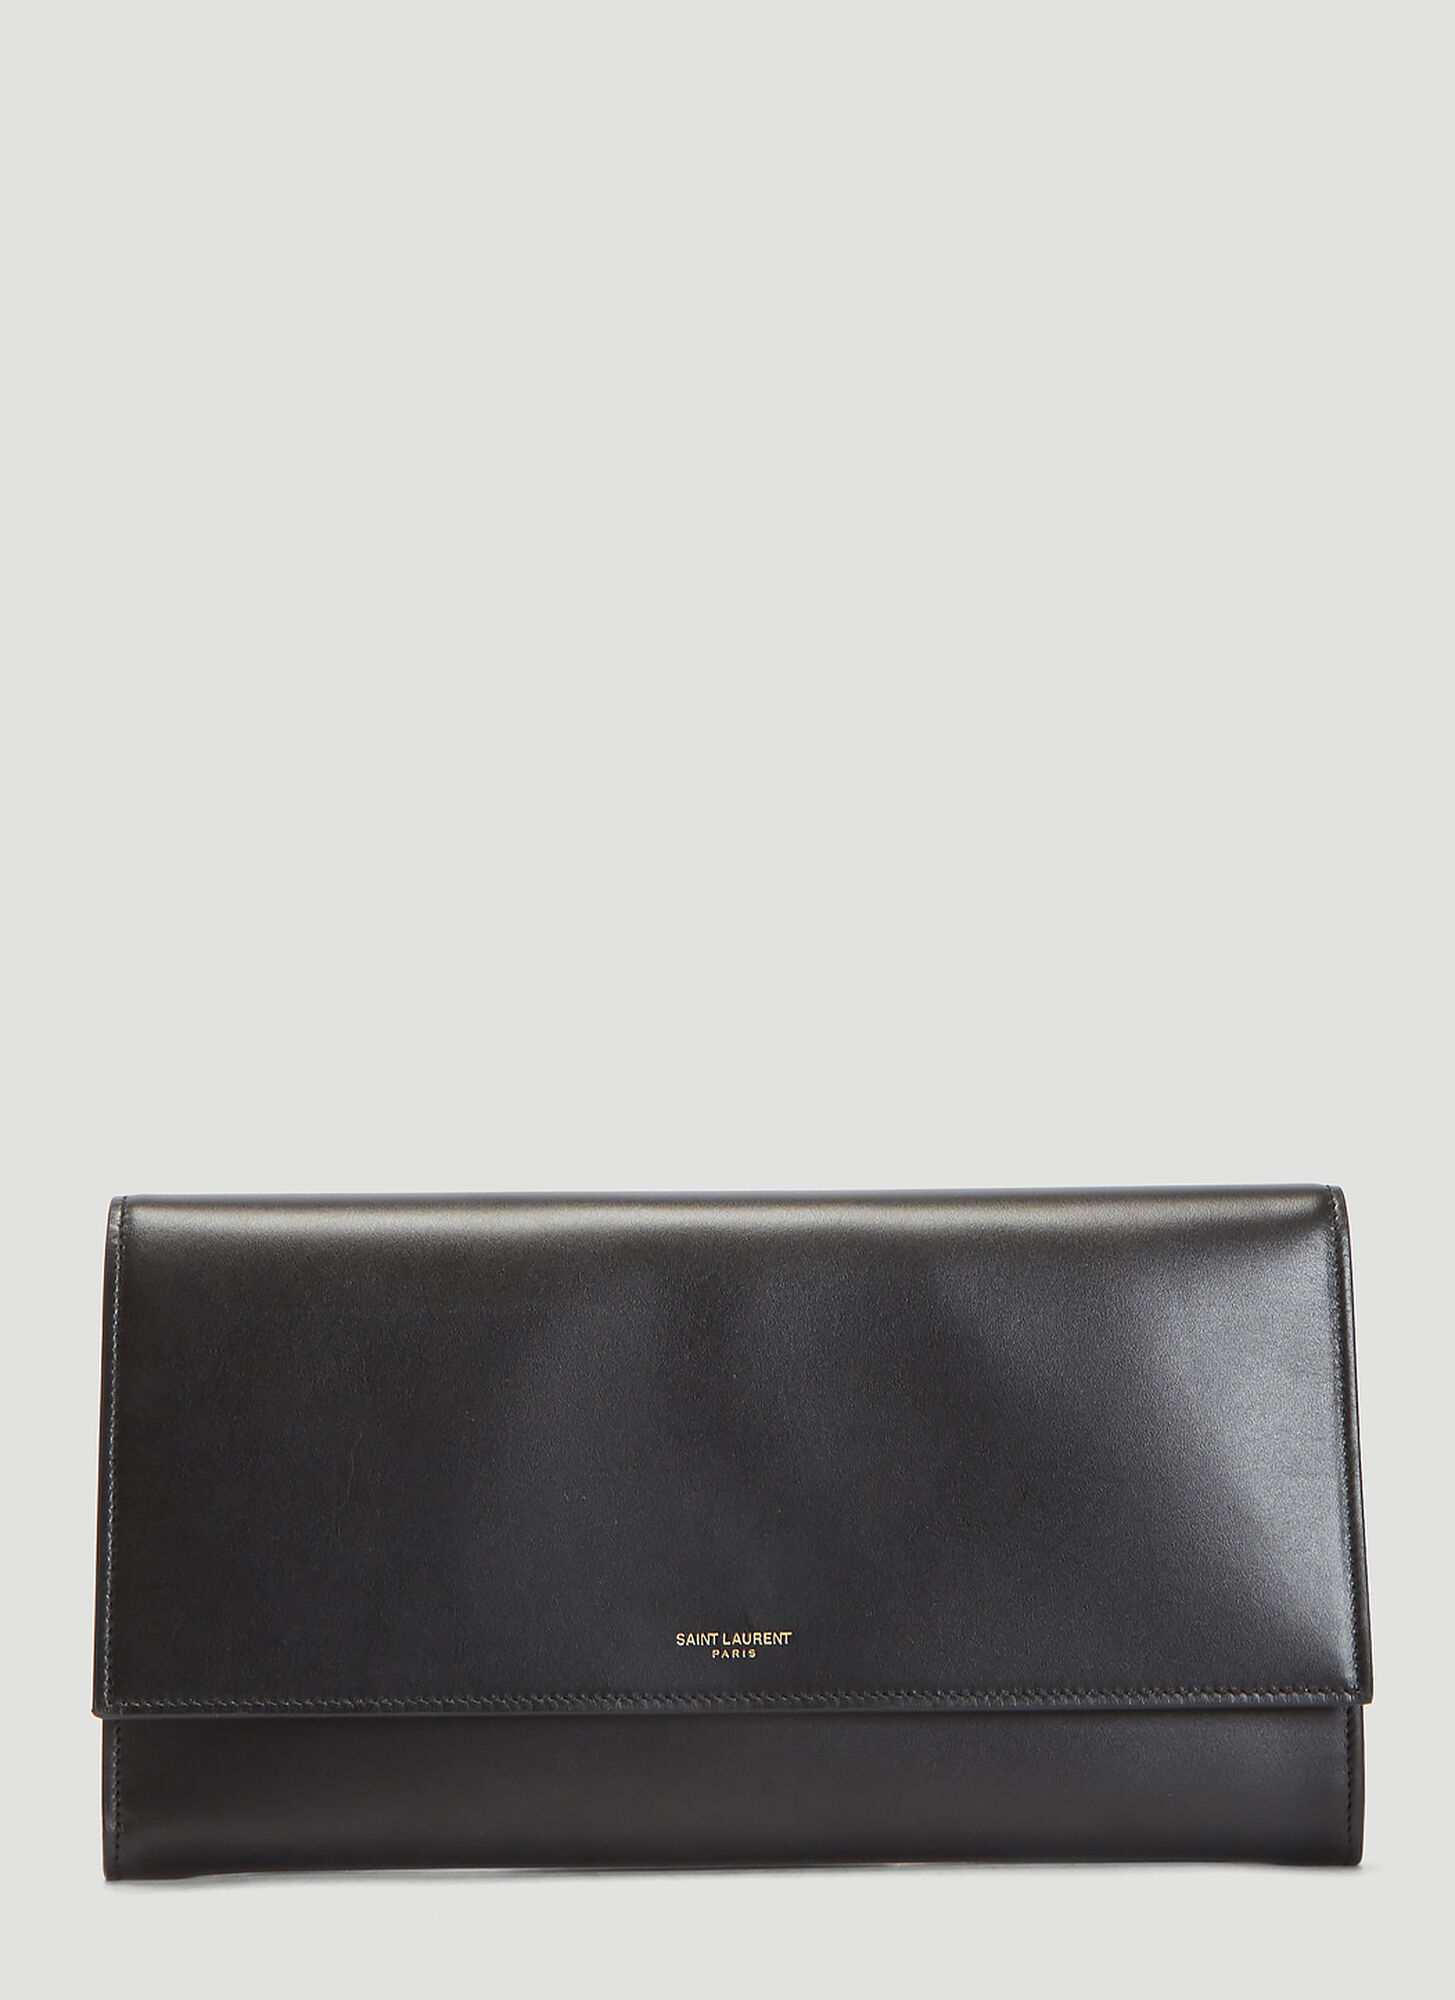 Saint Laurent Soho Wallet in Black size One Size